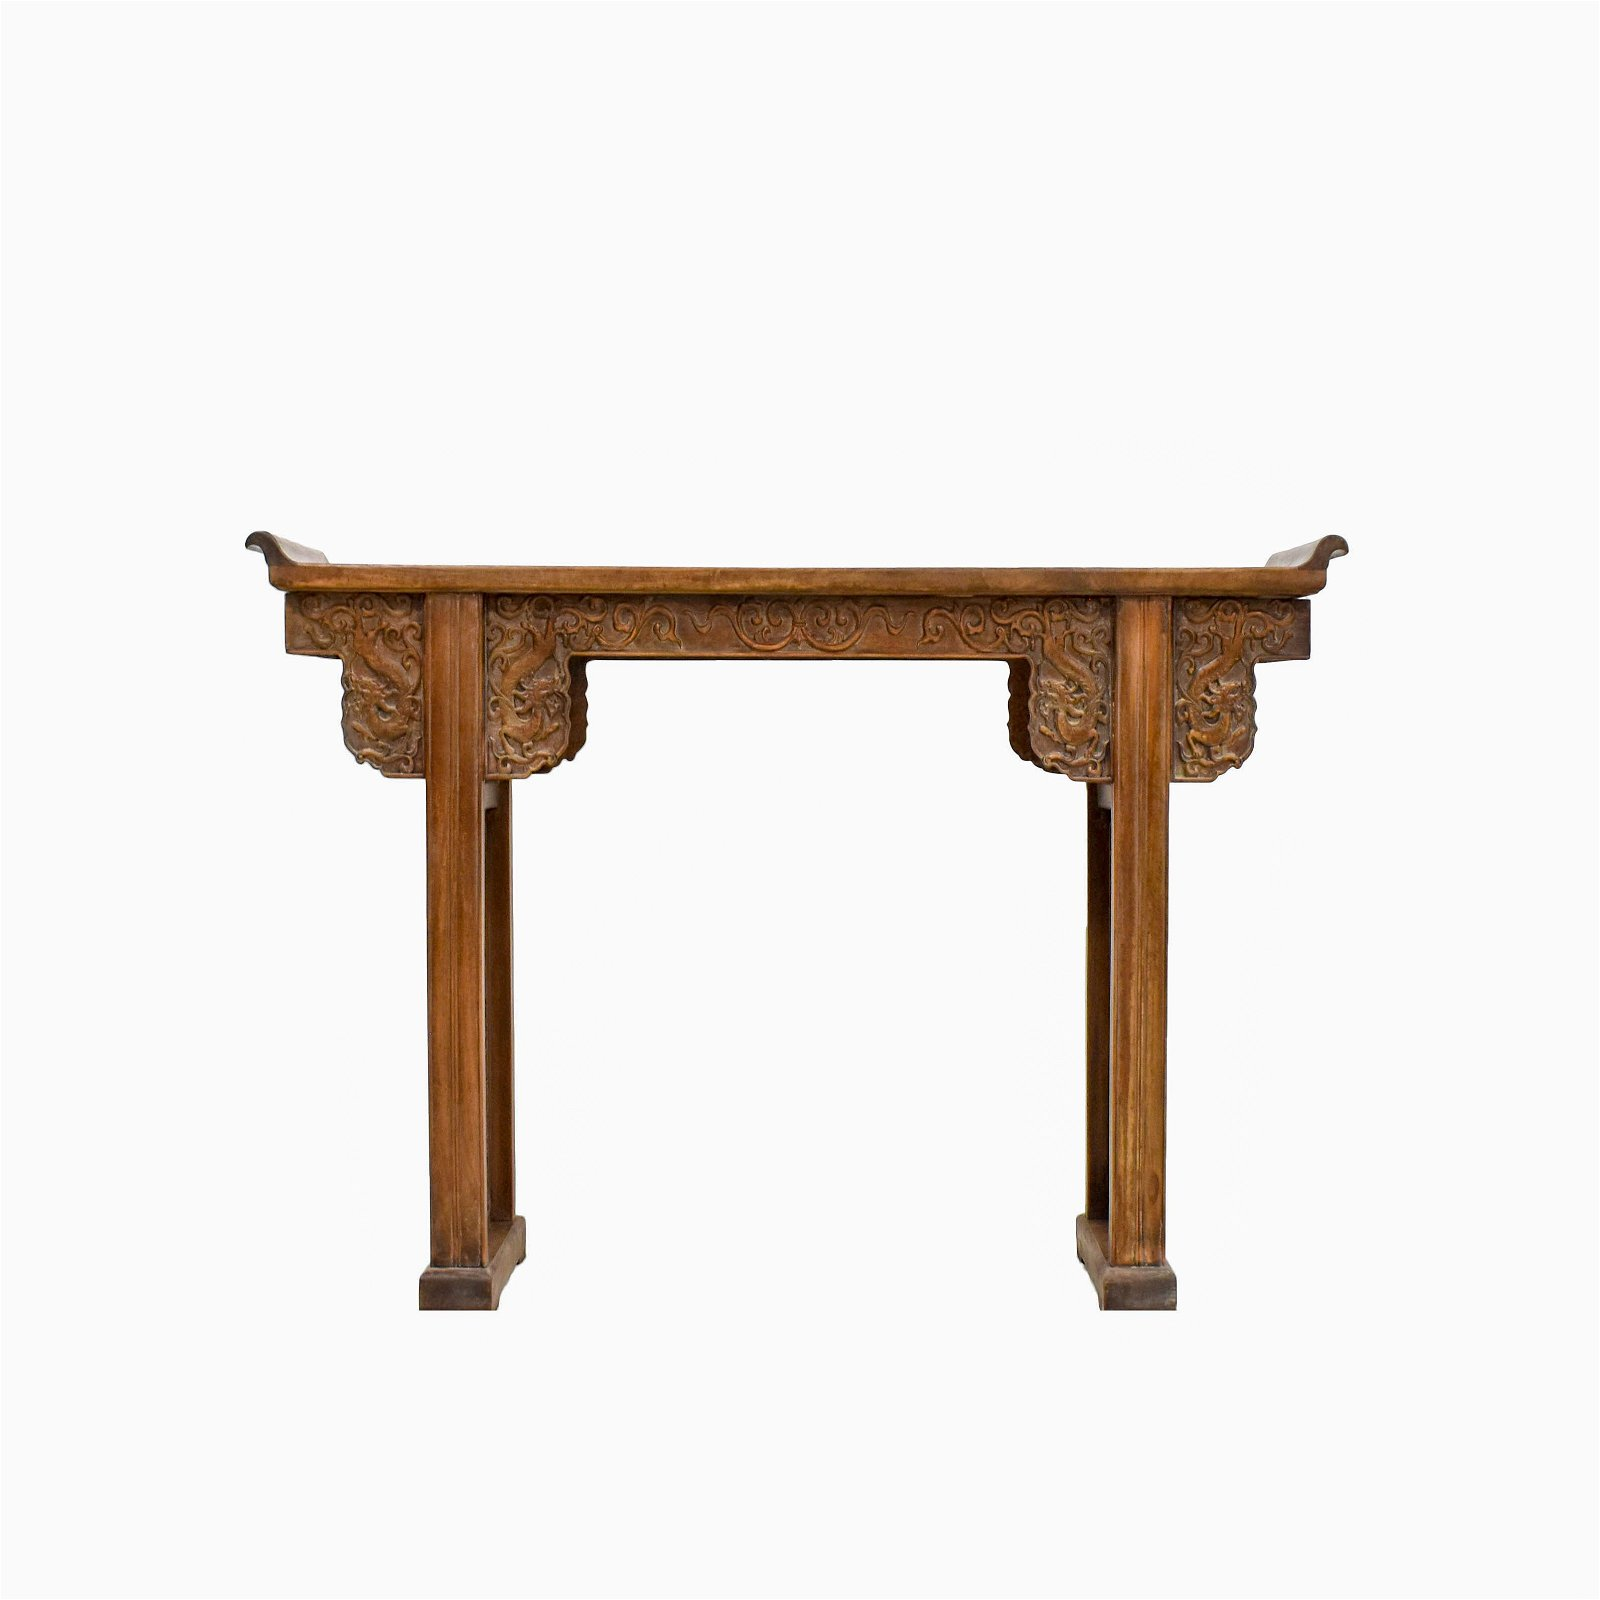 ANTIQUE CHINESE HUANGHUALI EVERTED RIM ALTAR TABLE